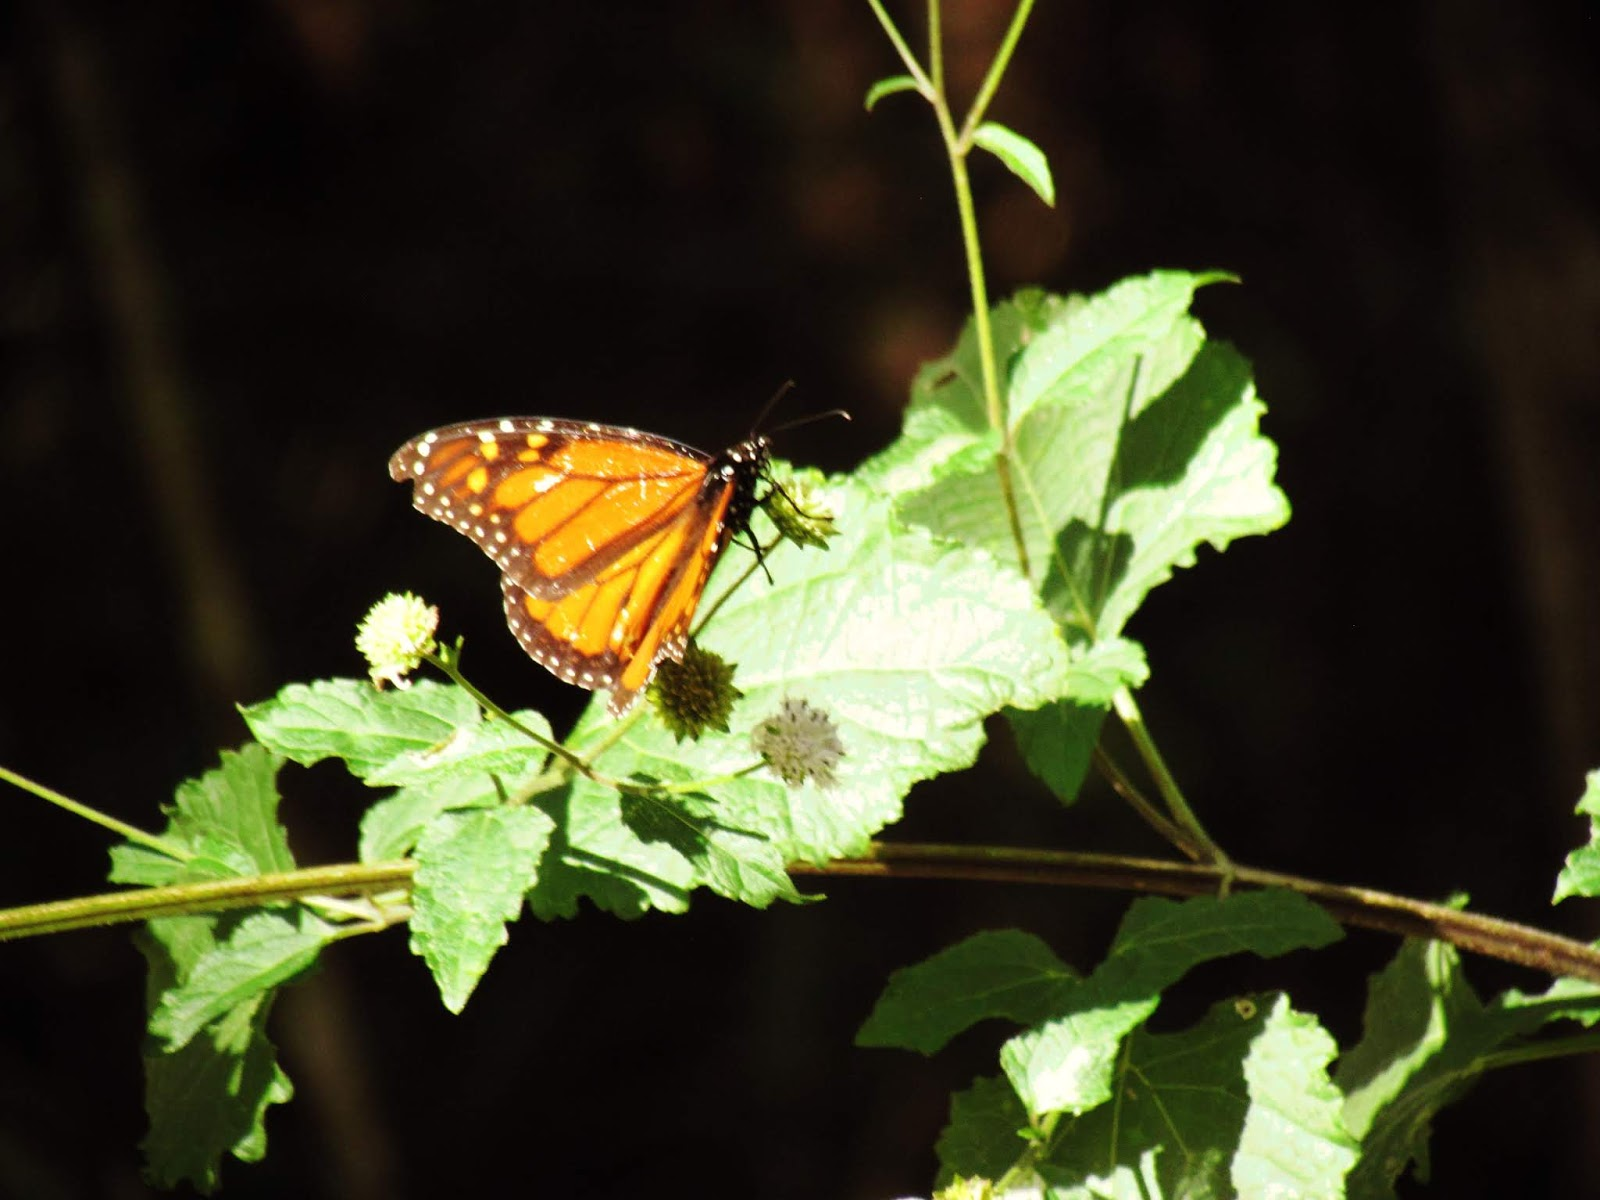 A painted lady butterfly, monarch butterfly, on green foliage in a Florida Fairytale Setting